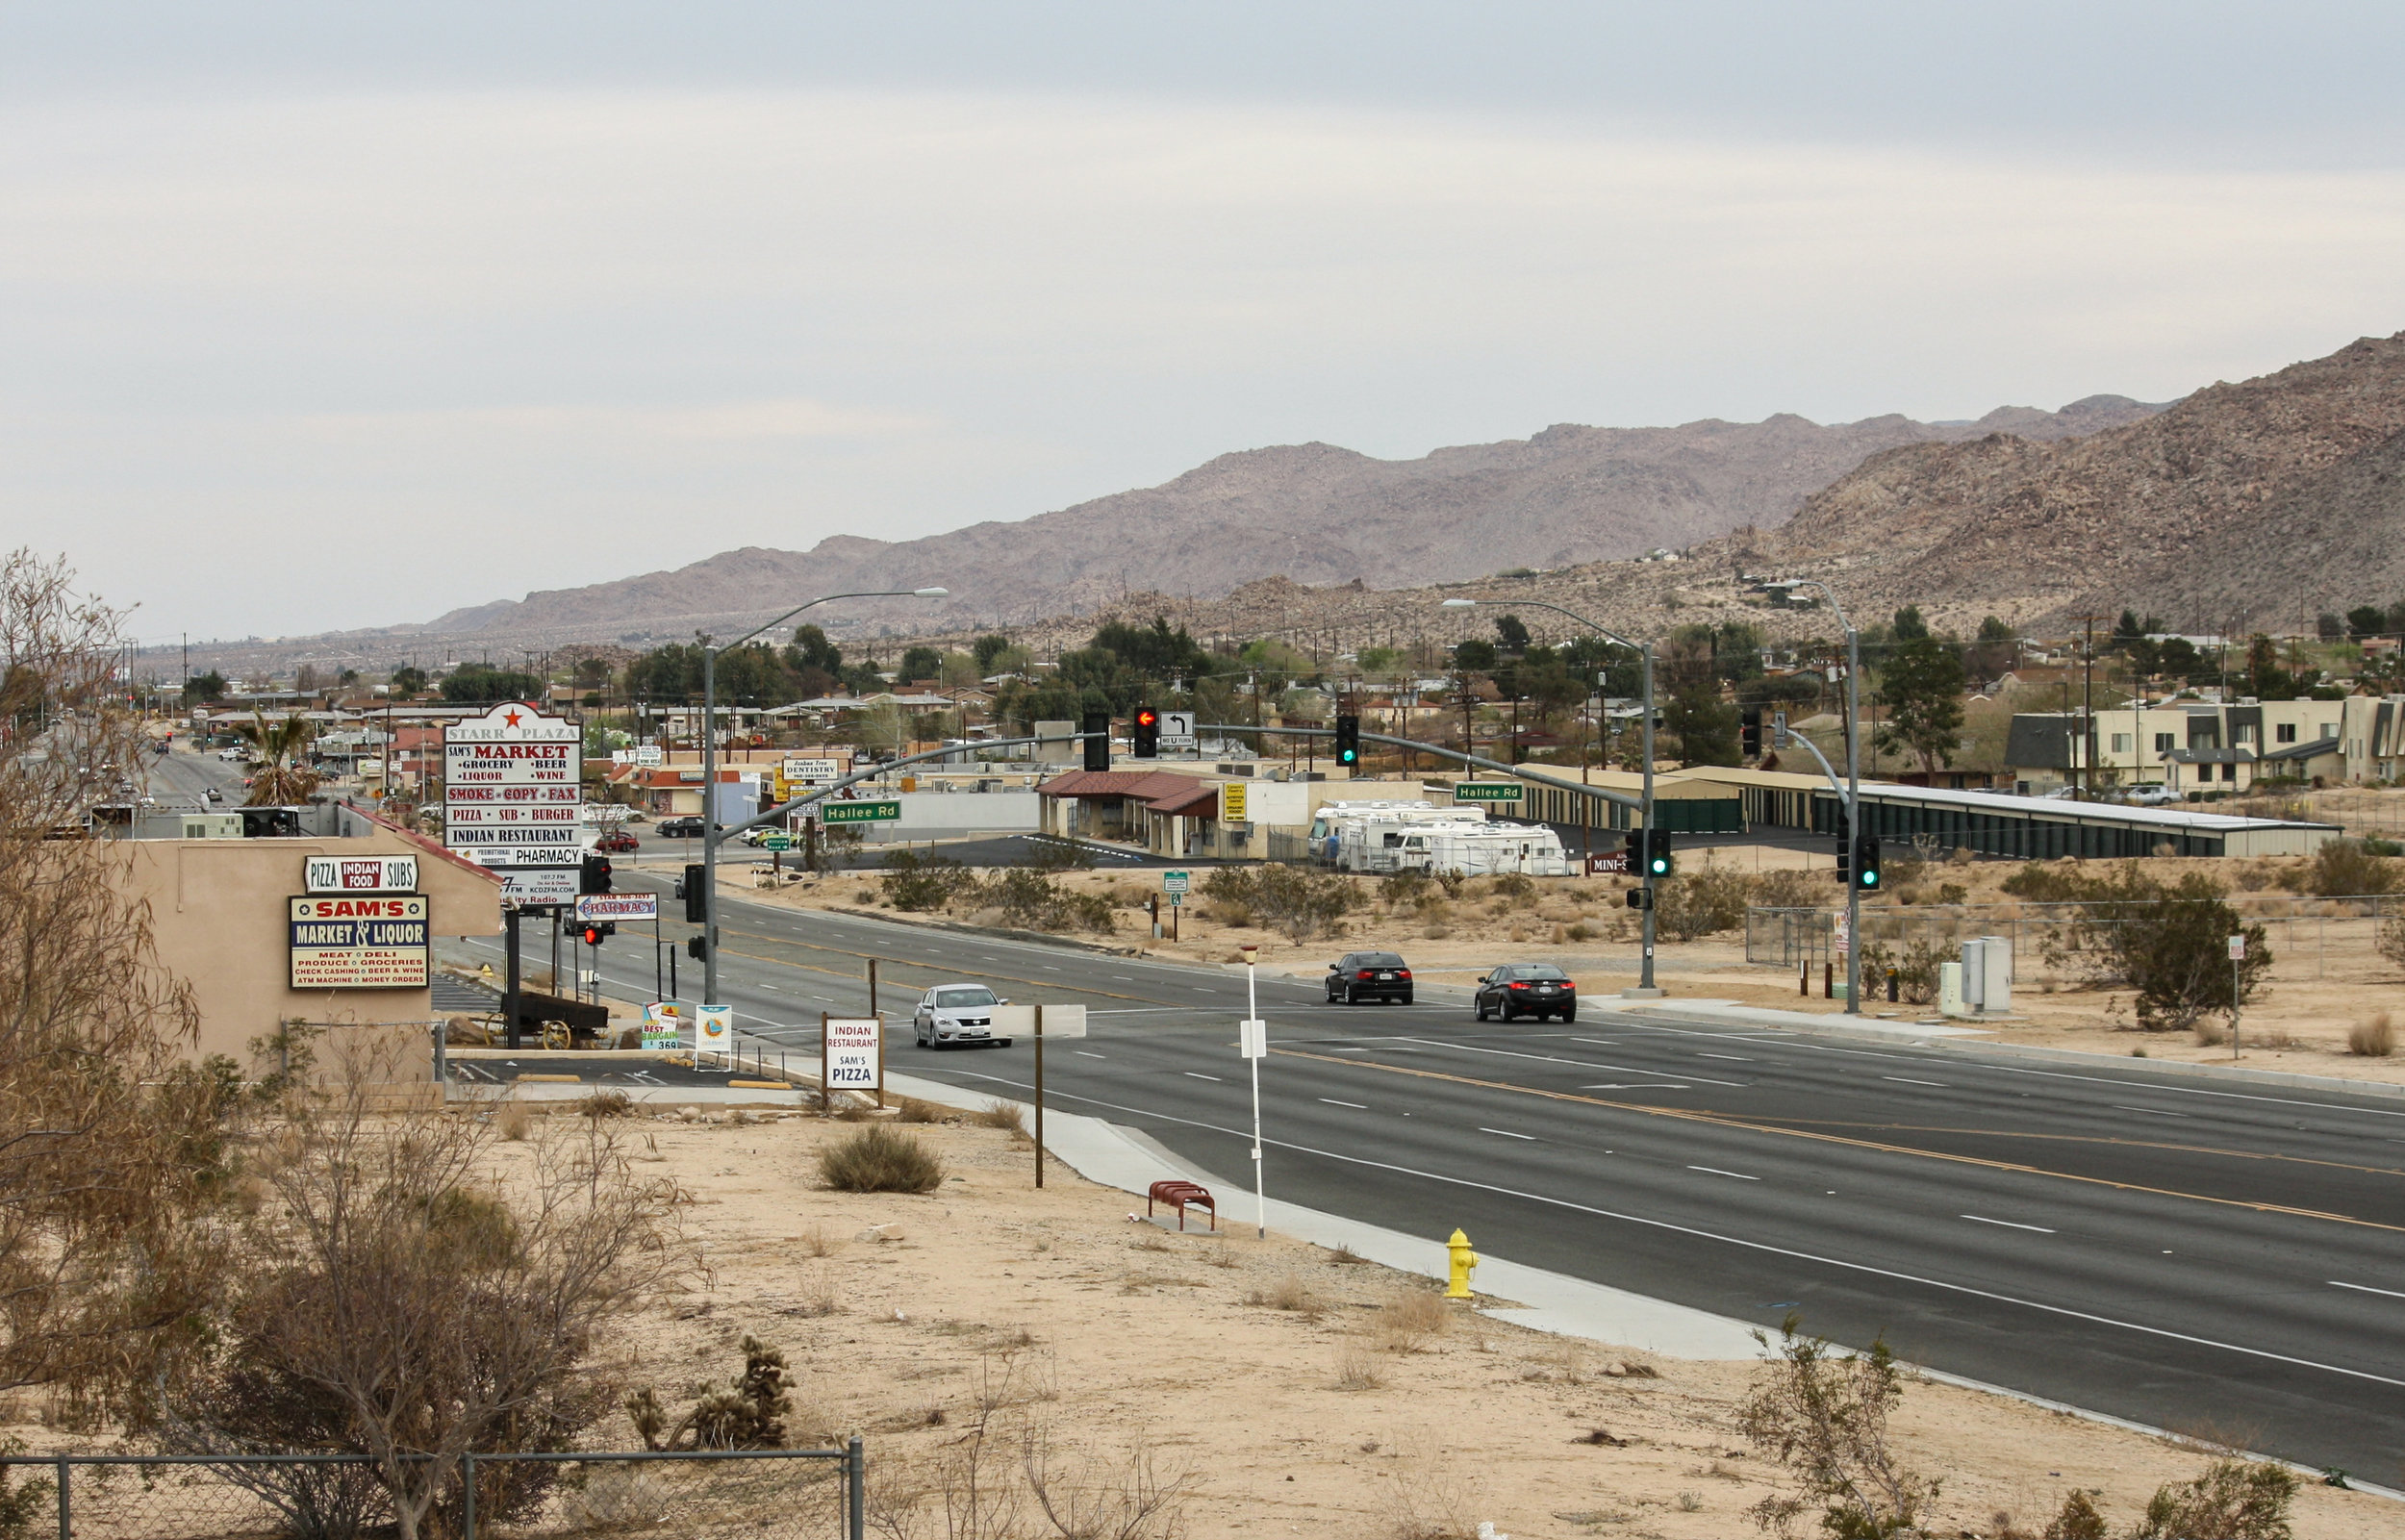 "Description.   (Document Link)    Source: ""Twentynine Palms Highway (State Route 62) in Joshua Tree, California"" by Bernard Gagnon – Own work. Licensed under CC BY SA 4.0 via Wikimedia Commons –  https://commons.wikimedia.org/wiki/File:Joshua_Tree,_California_01.jpg#/media/File:Joshua_Tree,_California_01.jpg"